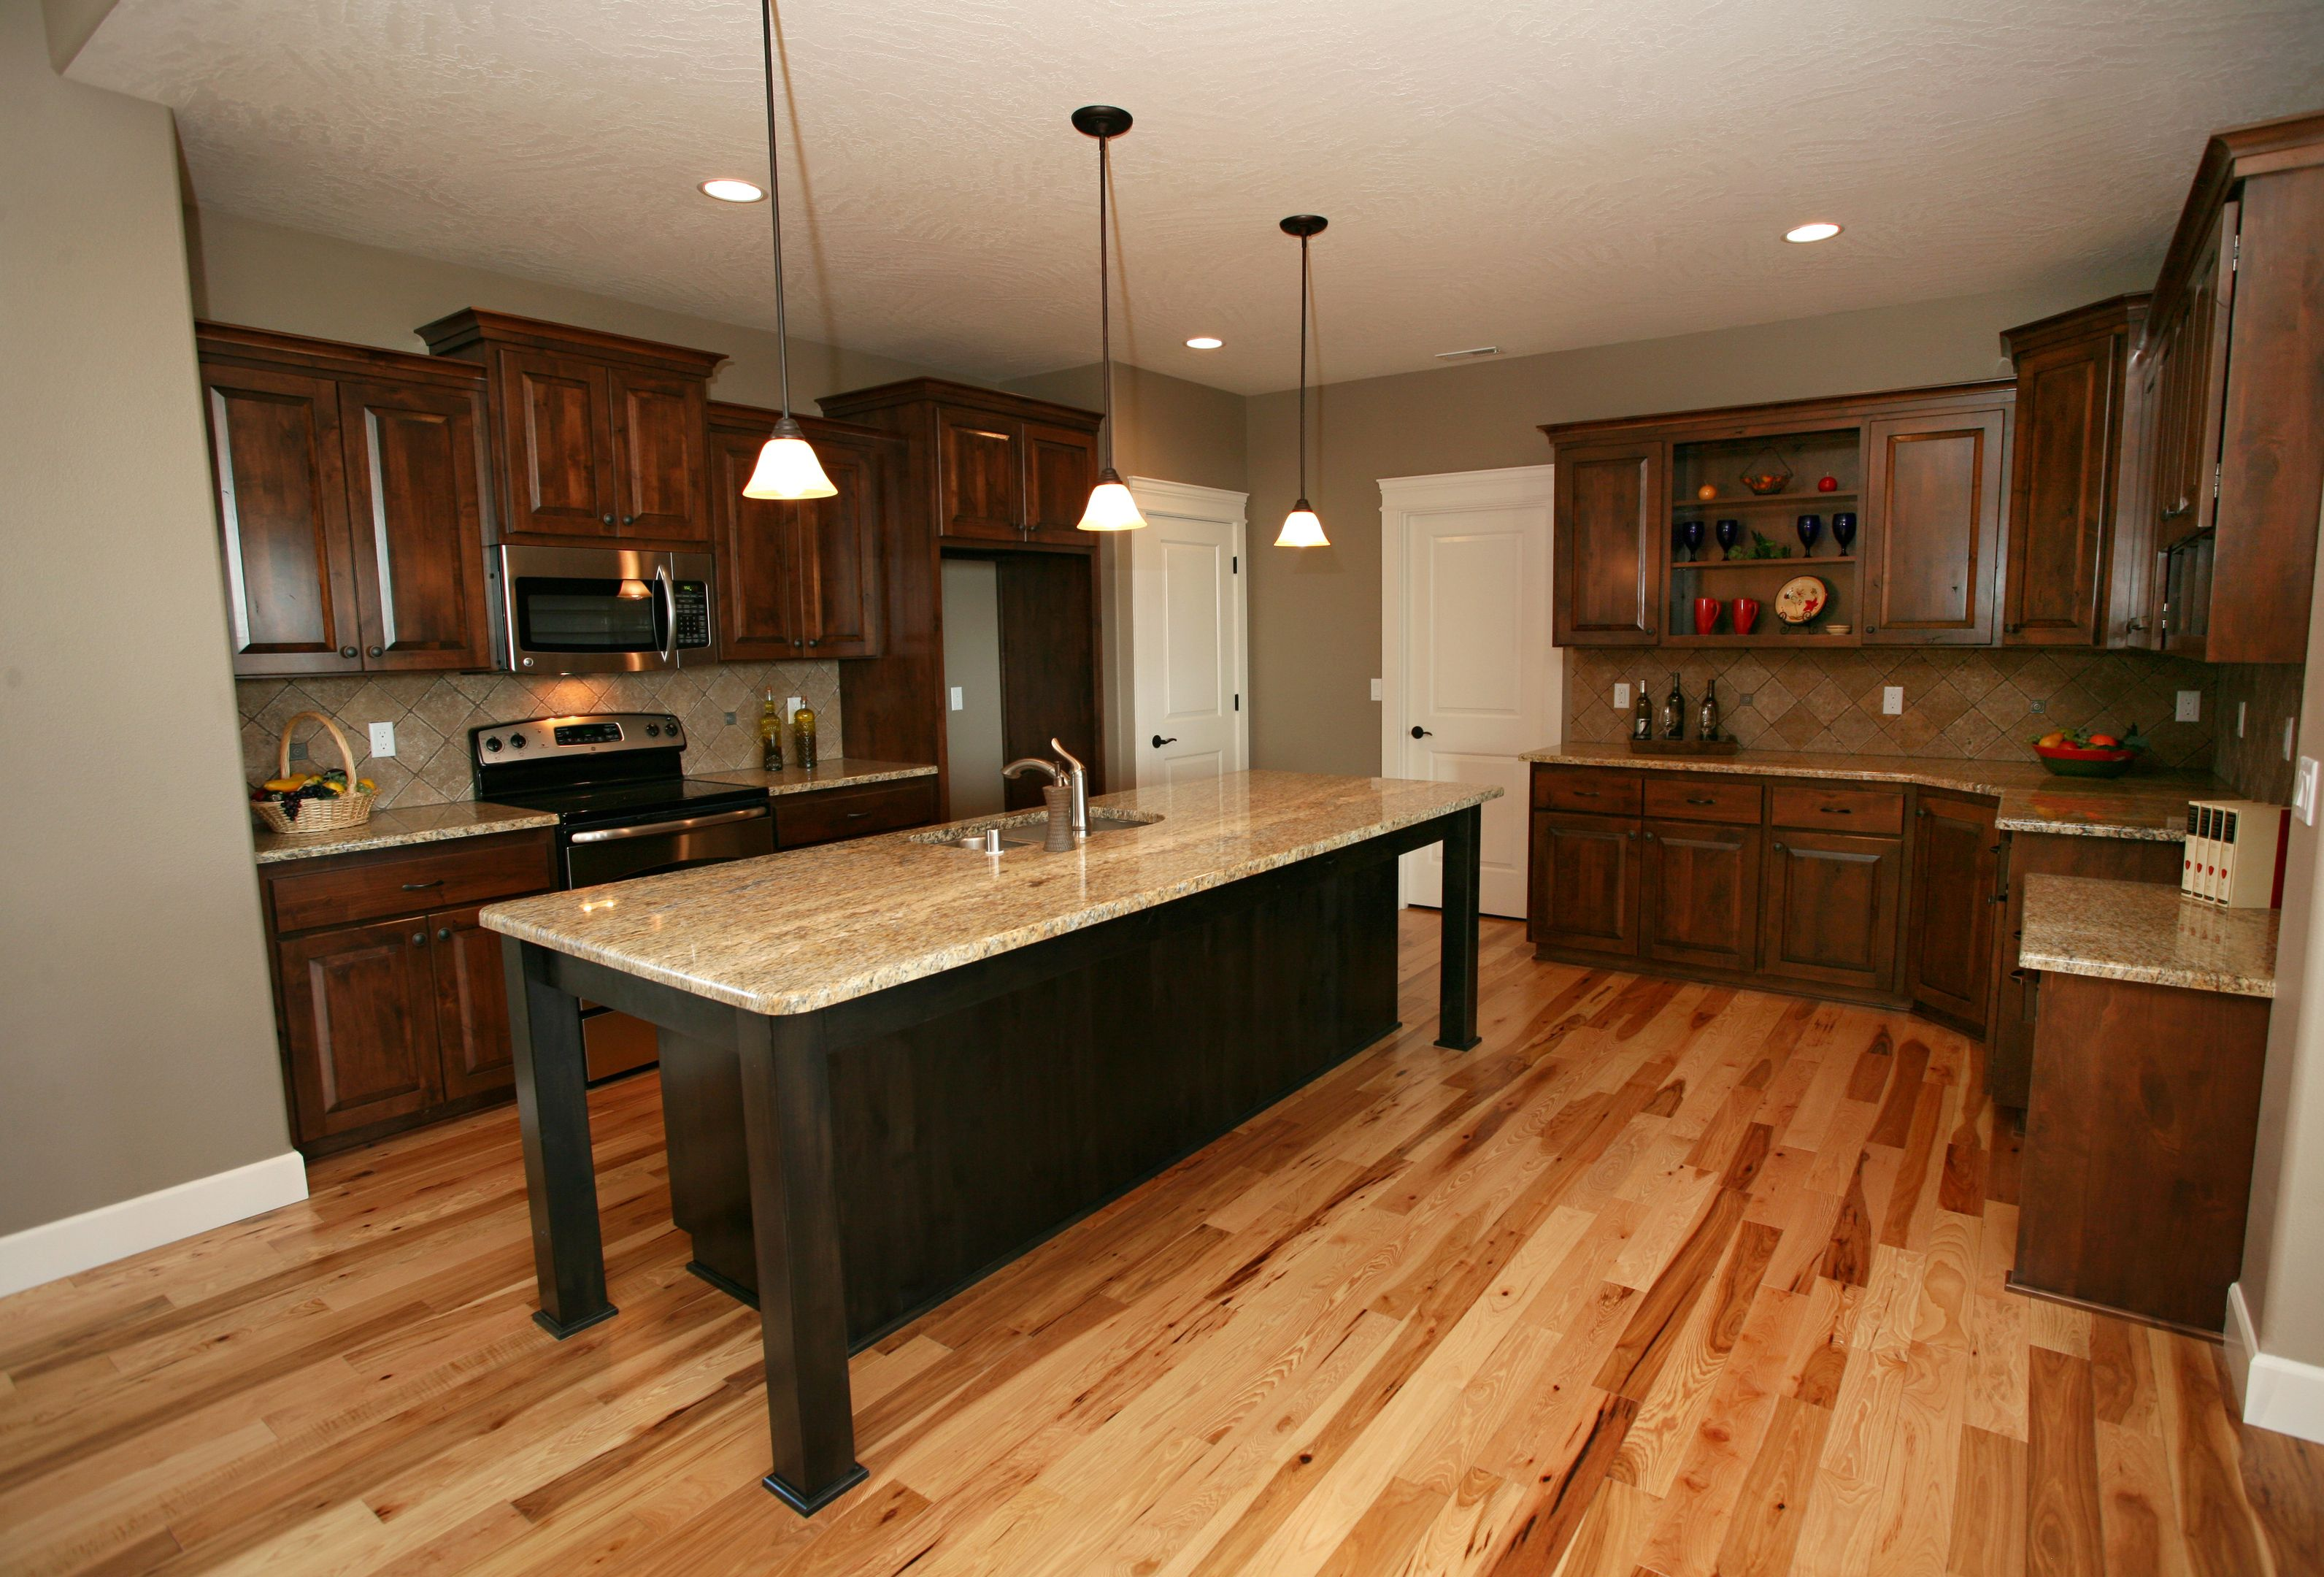 Image result for Clear alder cabinets with a painted wood ...